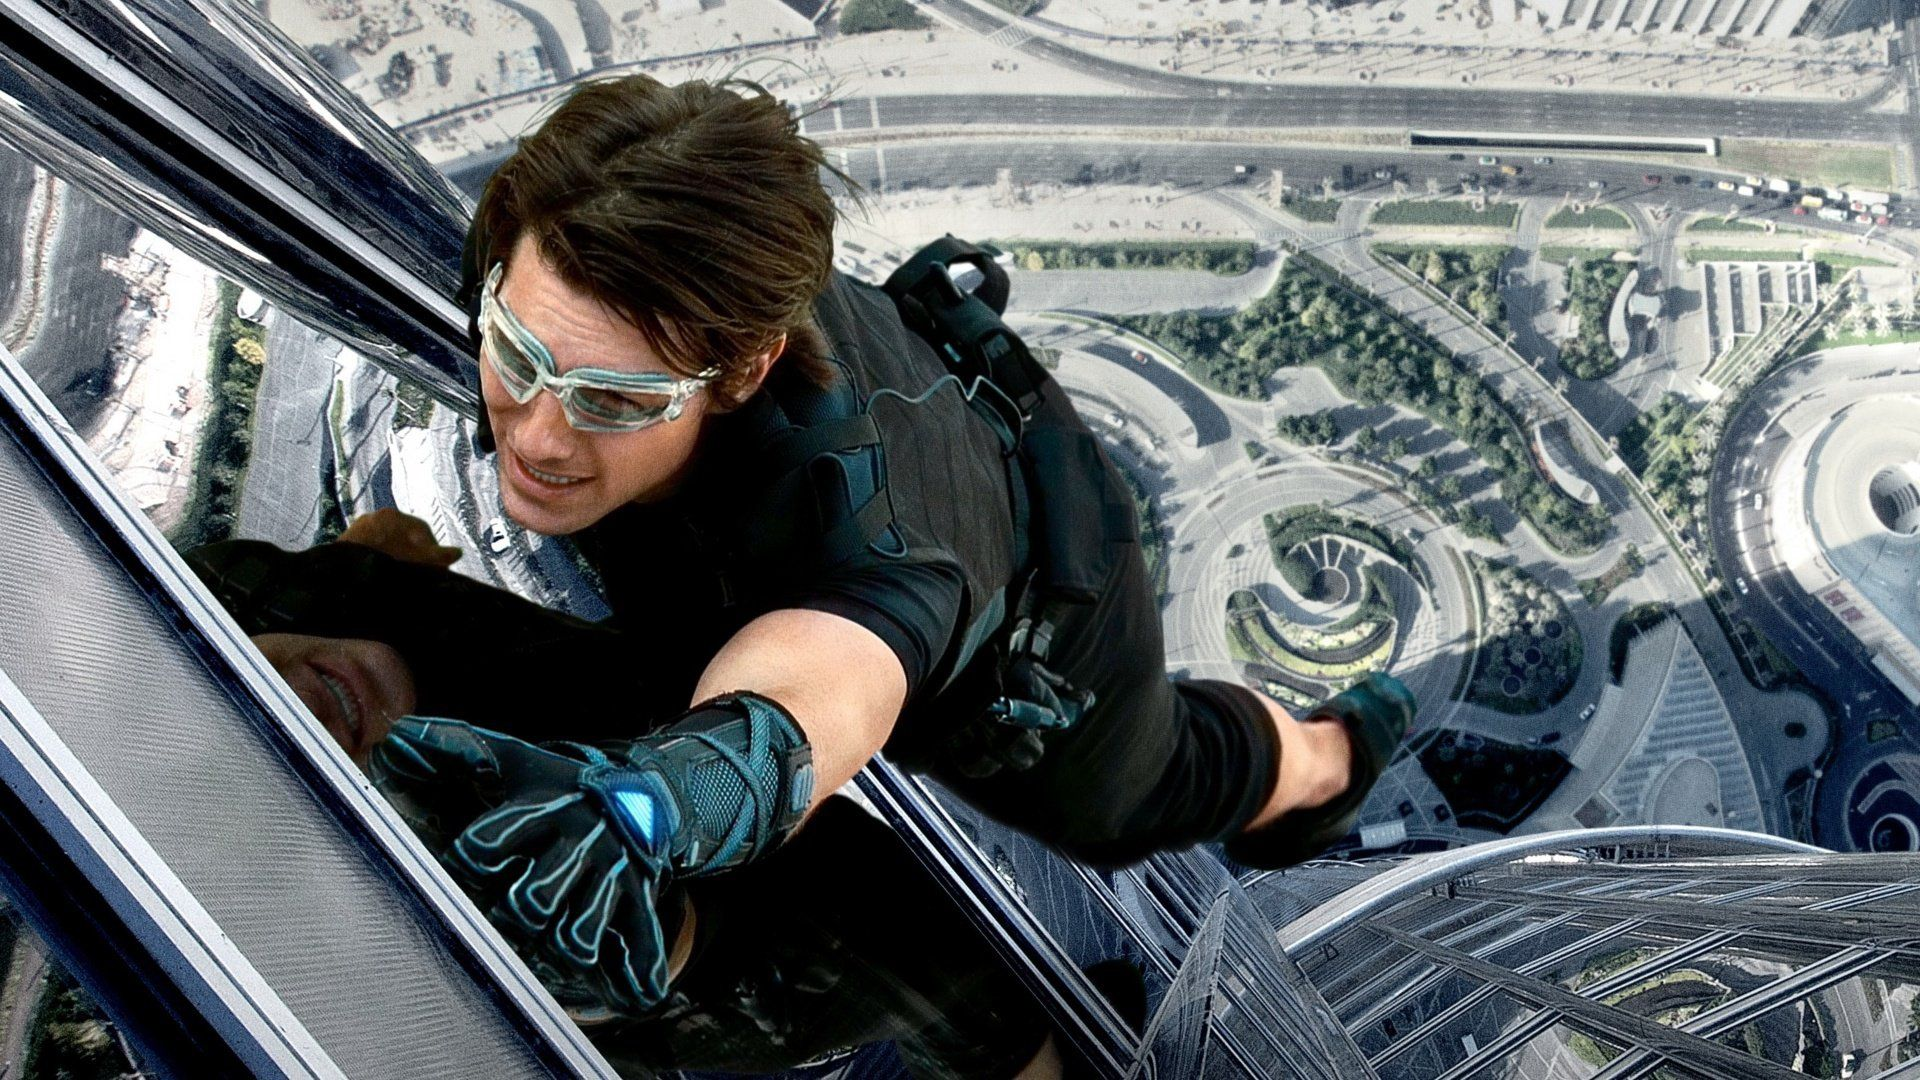 tom cruise, tom cruise stunts, mission impossible